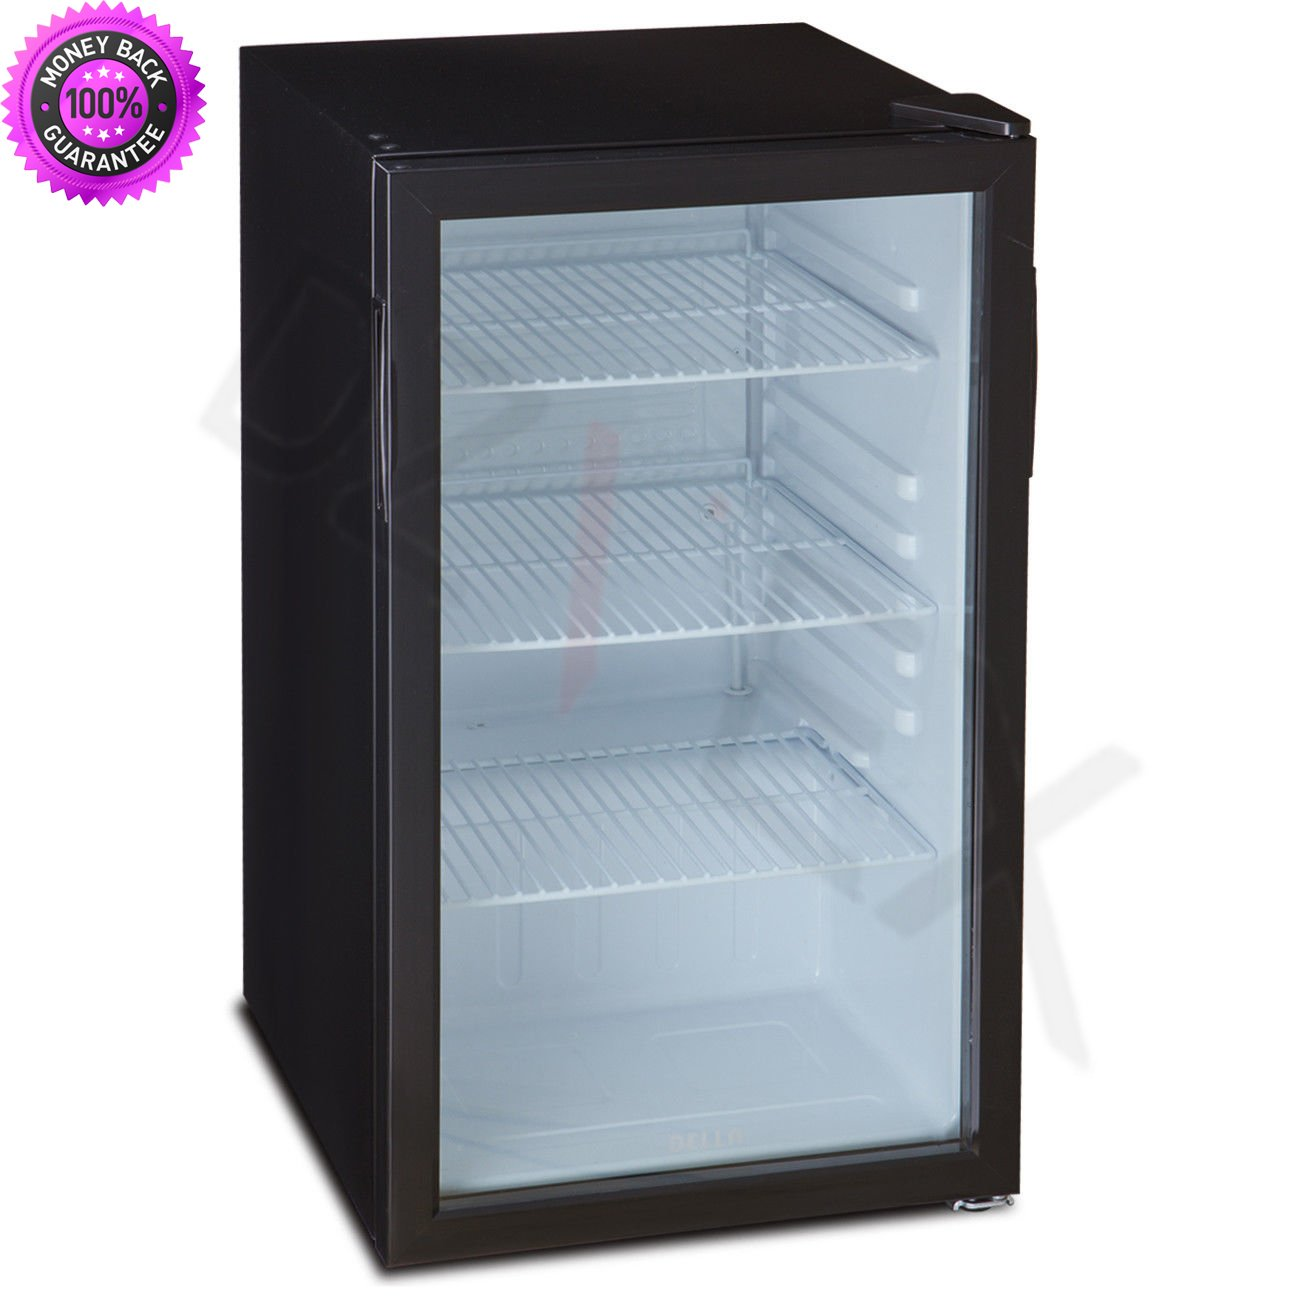 DzVeX__Beverage Wine Cooler Chiller Rack Mini Refrigerator LED Light Beer Soda, Black And mini fridge home depot mini fridge target mini fridge best buy mini fridge lowes mini refrigerator